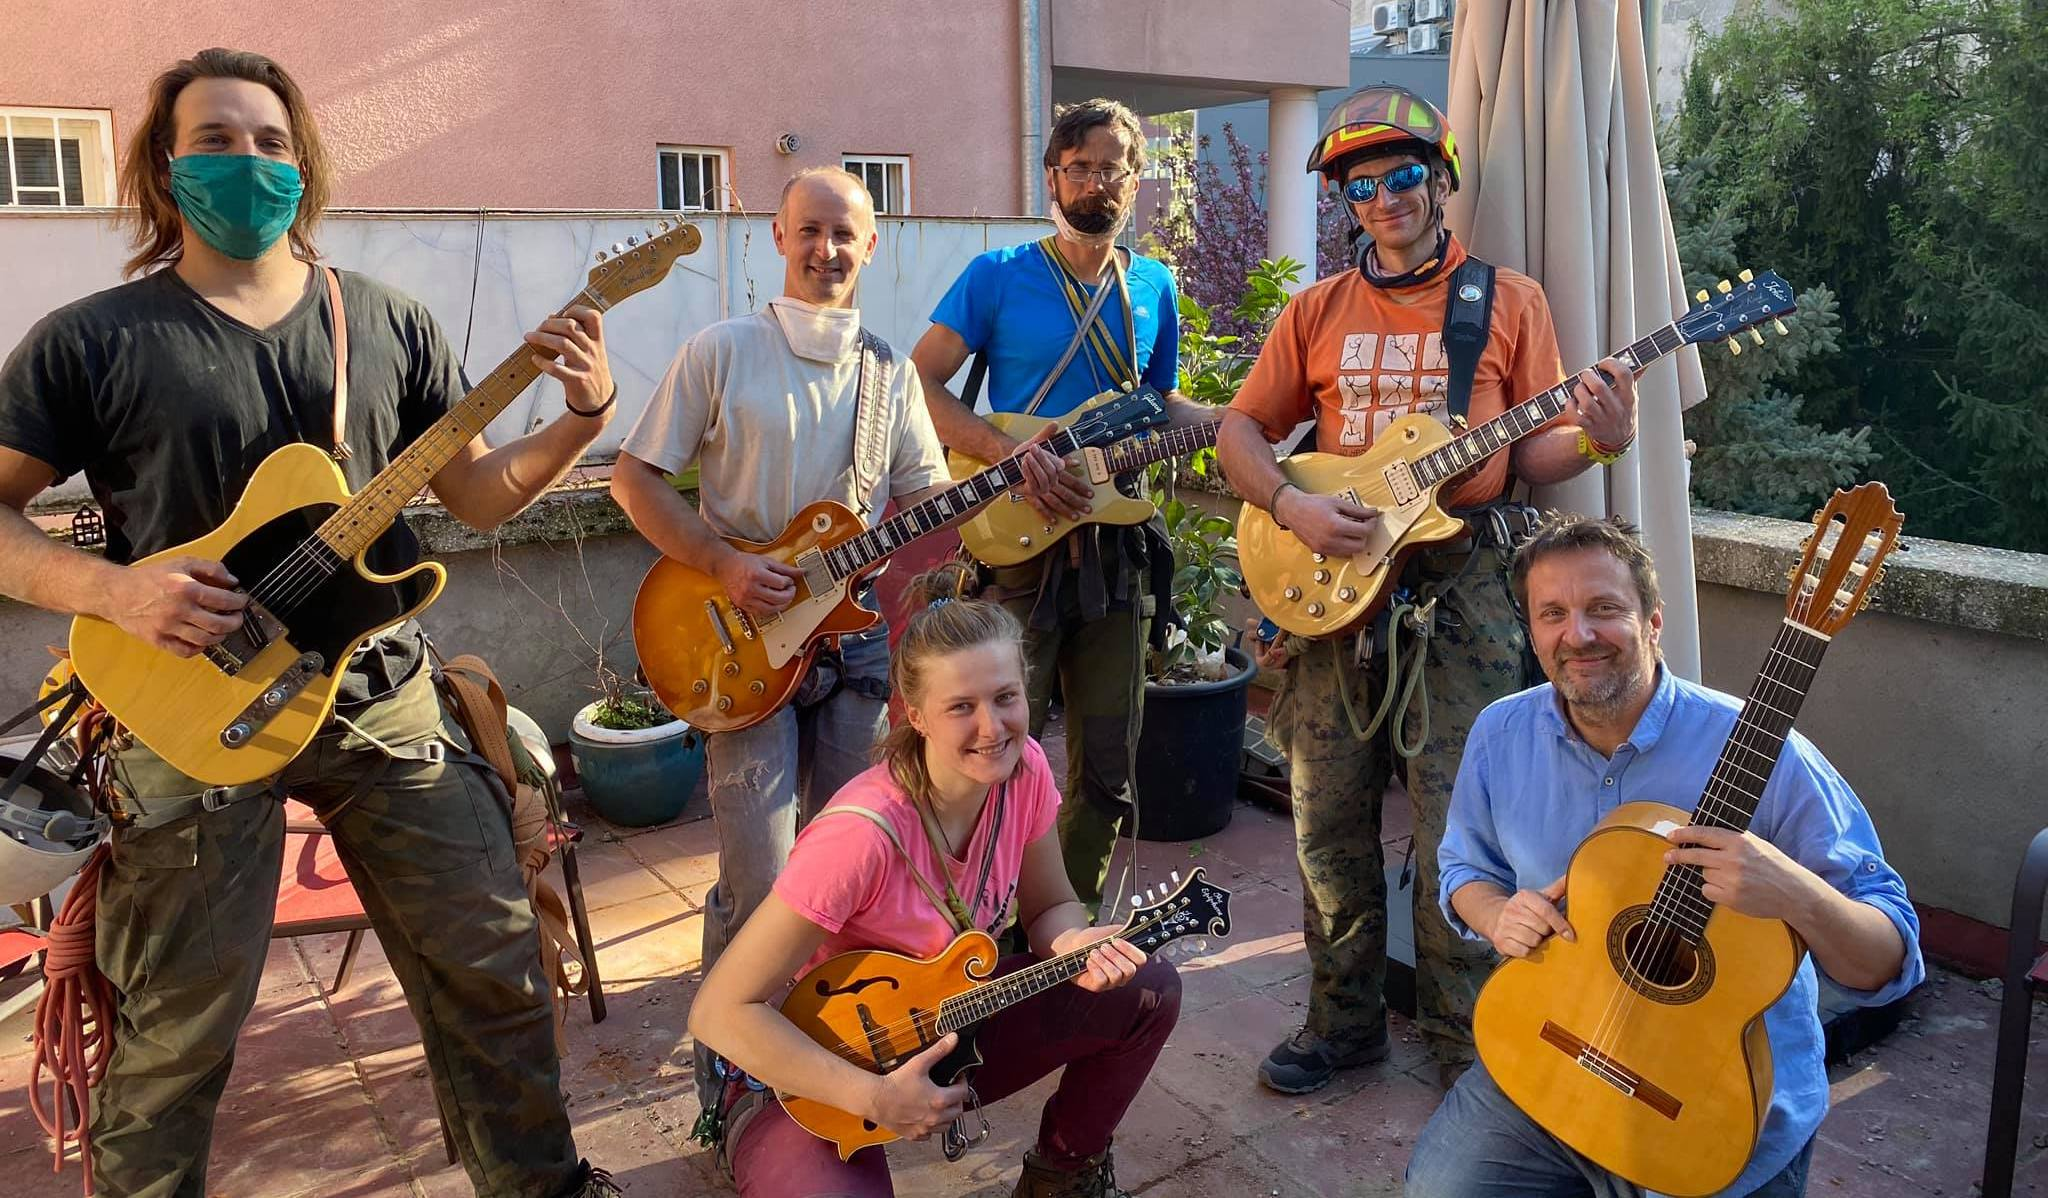 Well-known Croatian jazz musician Ante Gelo (lower right) poses with volunteers who cleared his roof from the loose material. Gelo played for them while they were working on the roof and showed them a collection of his fine guitars. [Photo] Courtesy of Ante Gelo